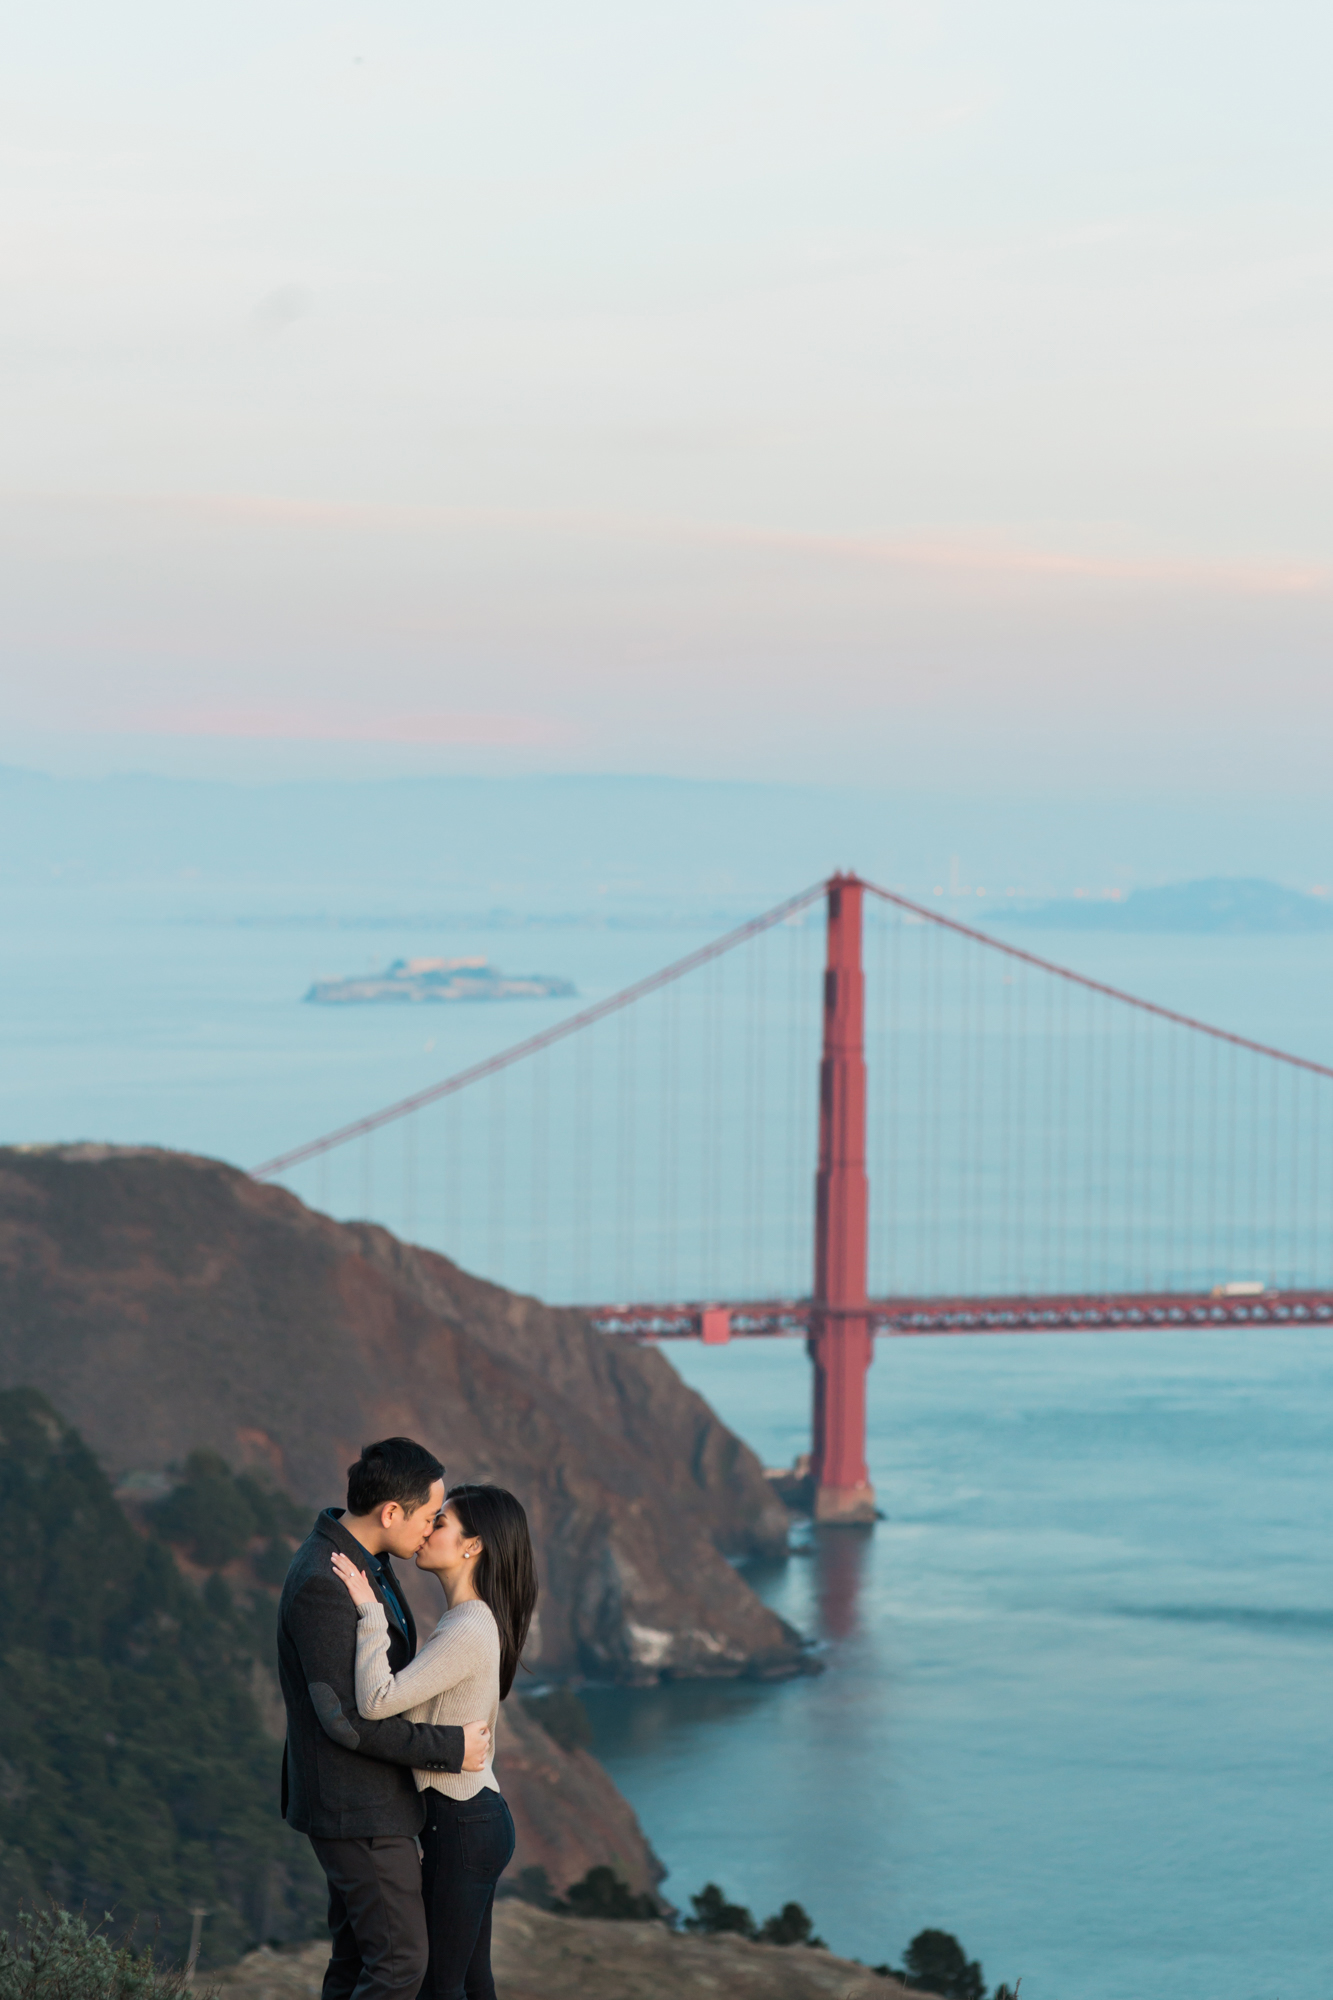 joeewong-jaal-california-san-francisco-engagement-23